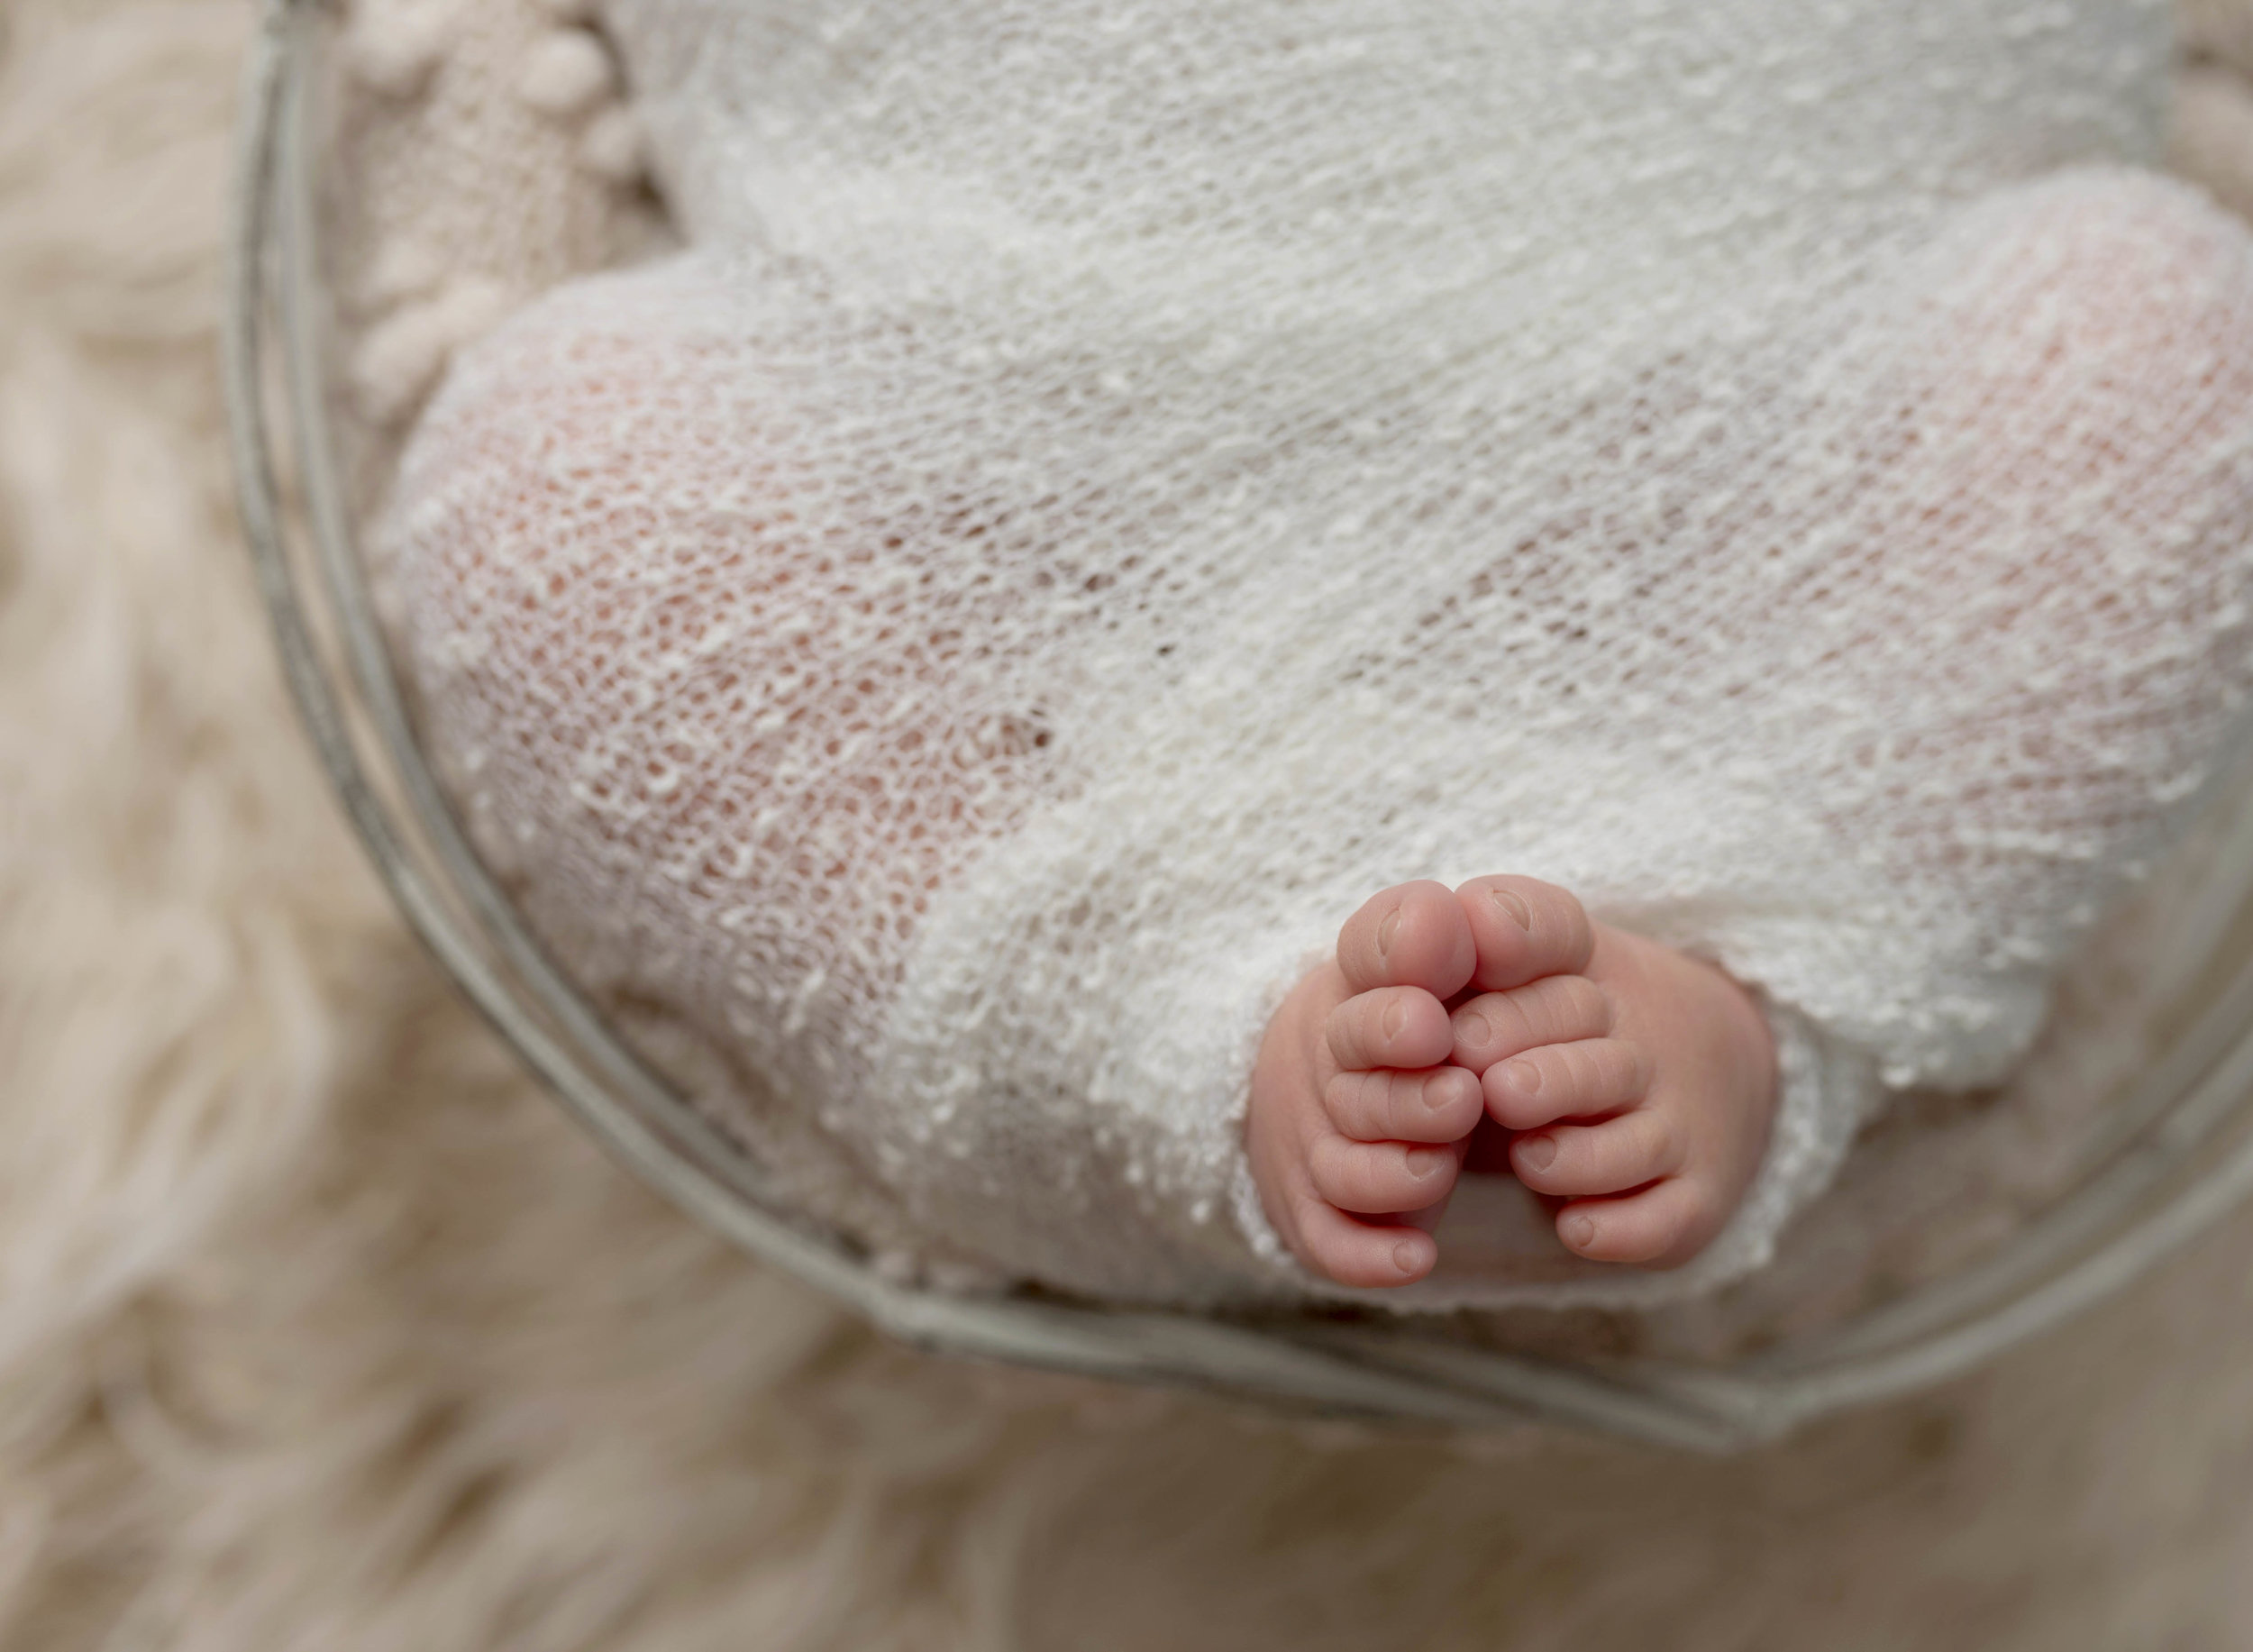 Titling/Alt Text/Description: 1. newborn photography jacksonville 2. newborn in basket 3. photography 4. st augustine photographer 5. parents and baby 6. studio lighting 7. swaddled baby